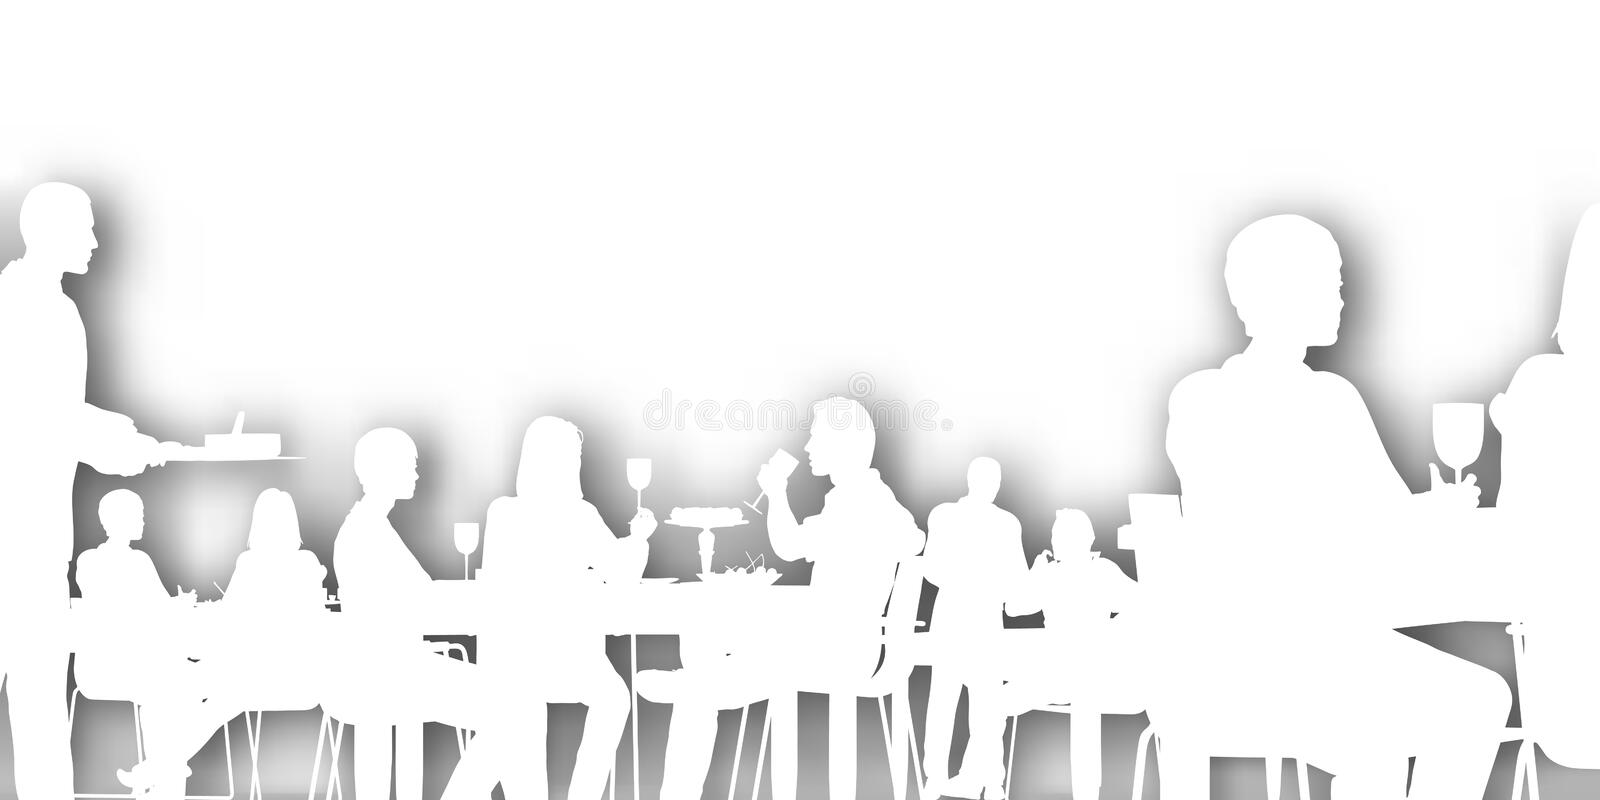 Cutout dining. Editable cutout of people dining in a restaurant with background shadow made using a gradient mesh vector illustration